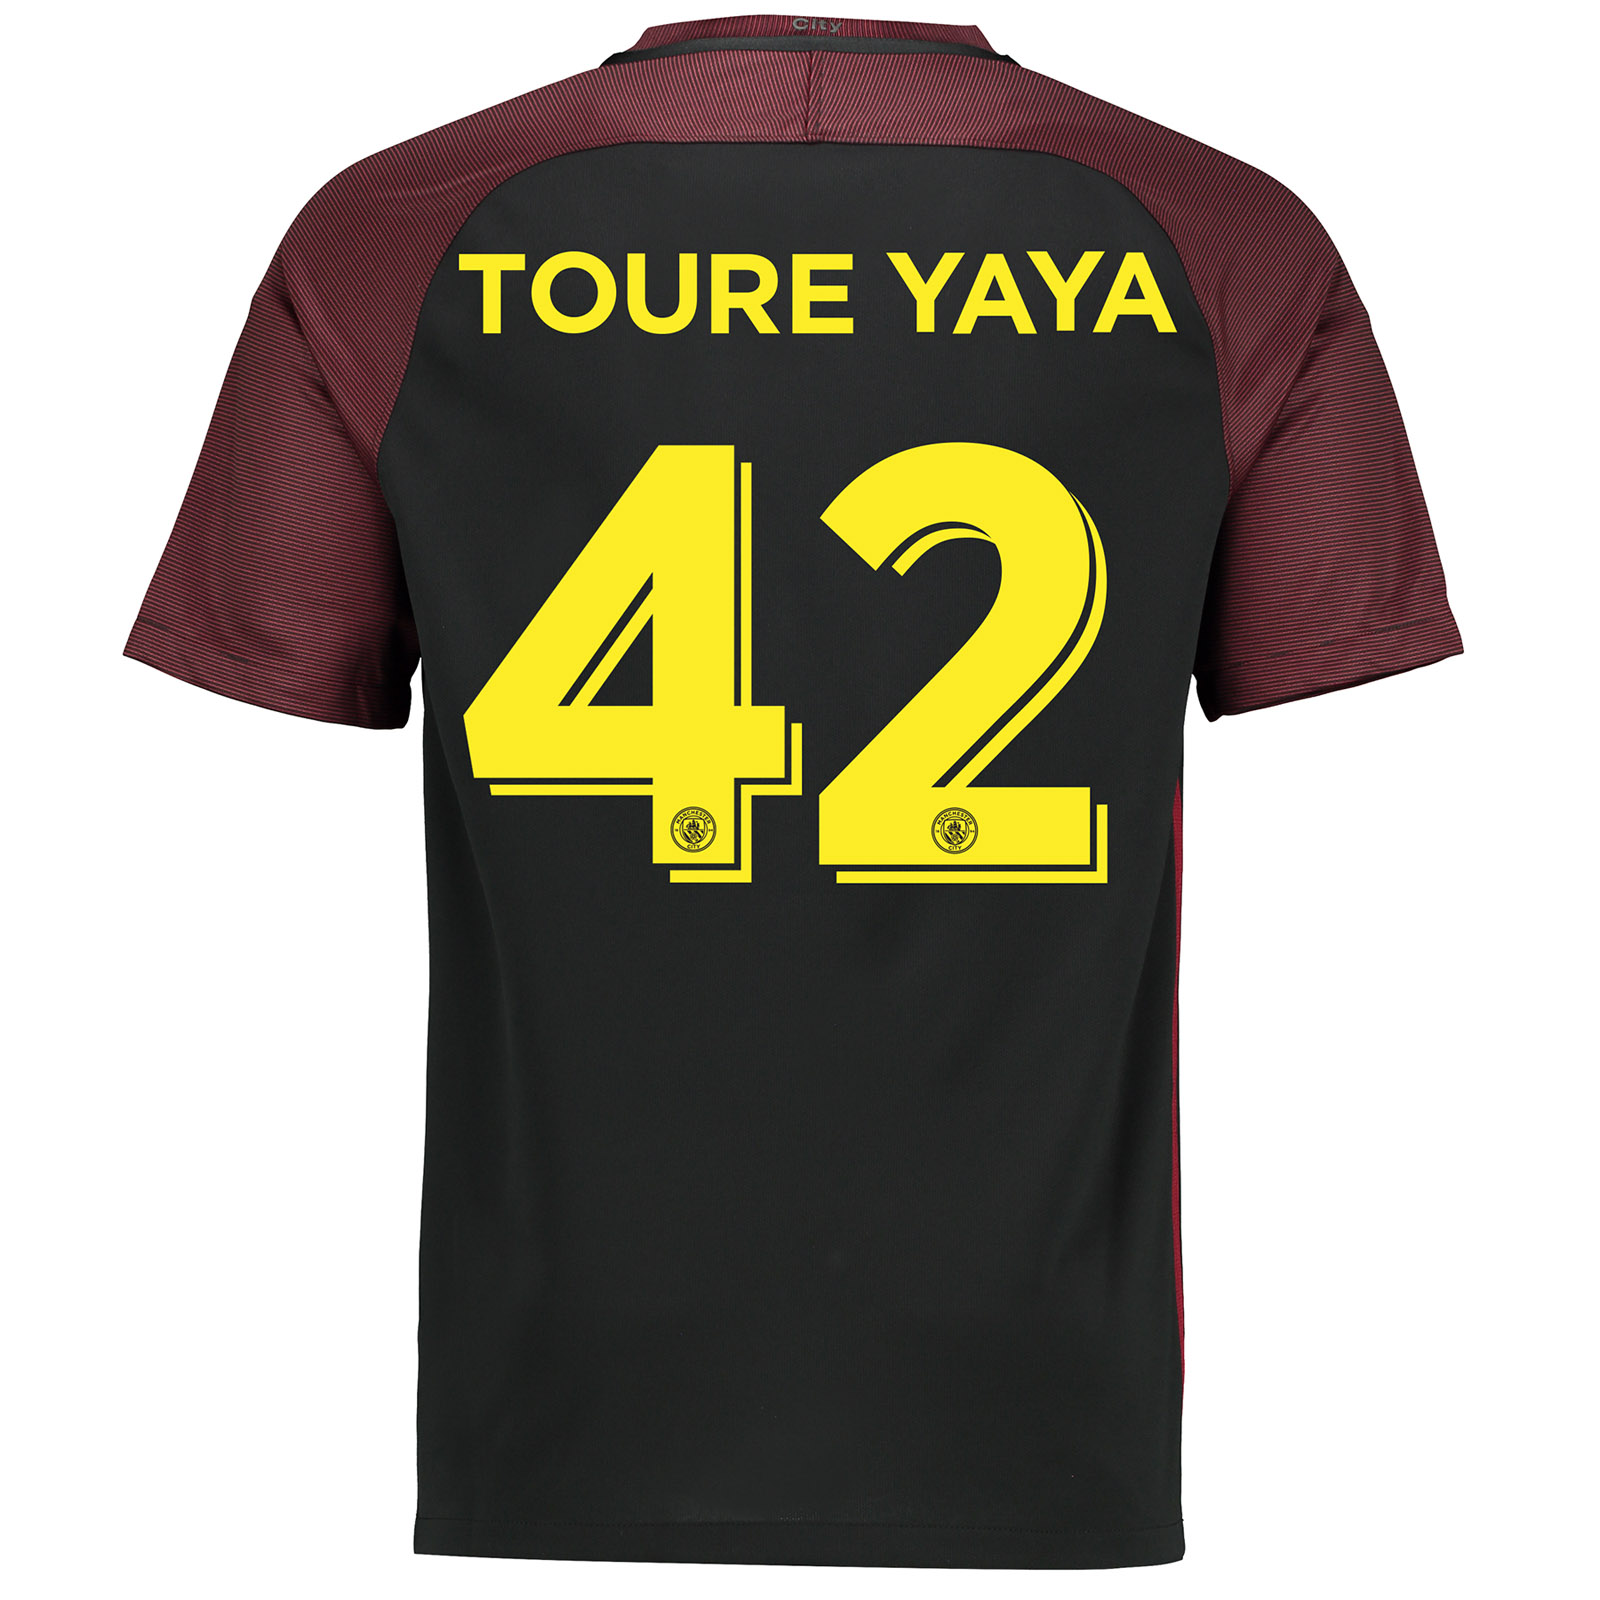 Manchester City Away Cup Stadium Shirt 2016-17 with Toure Yaya 42 prin